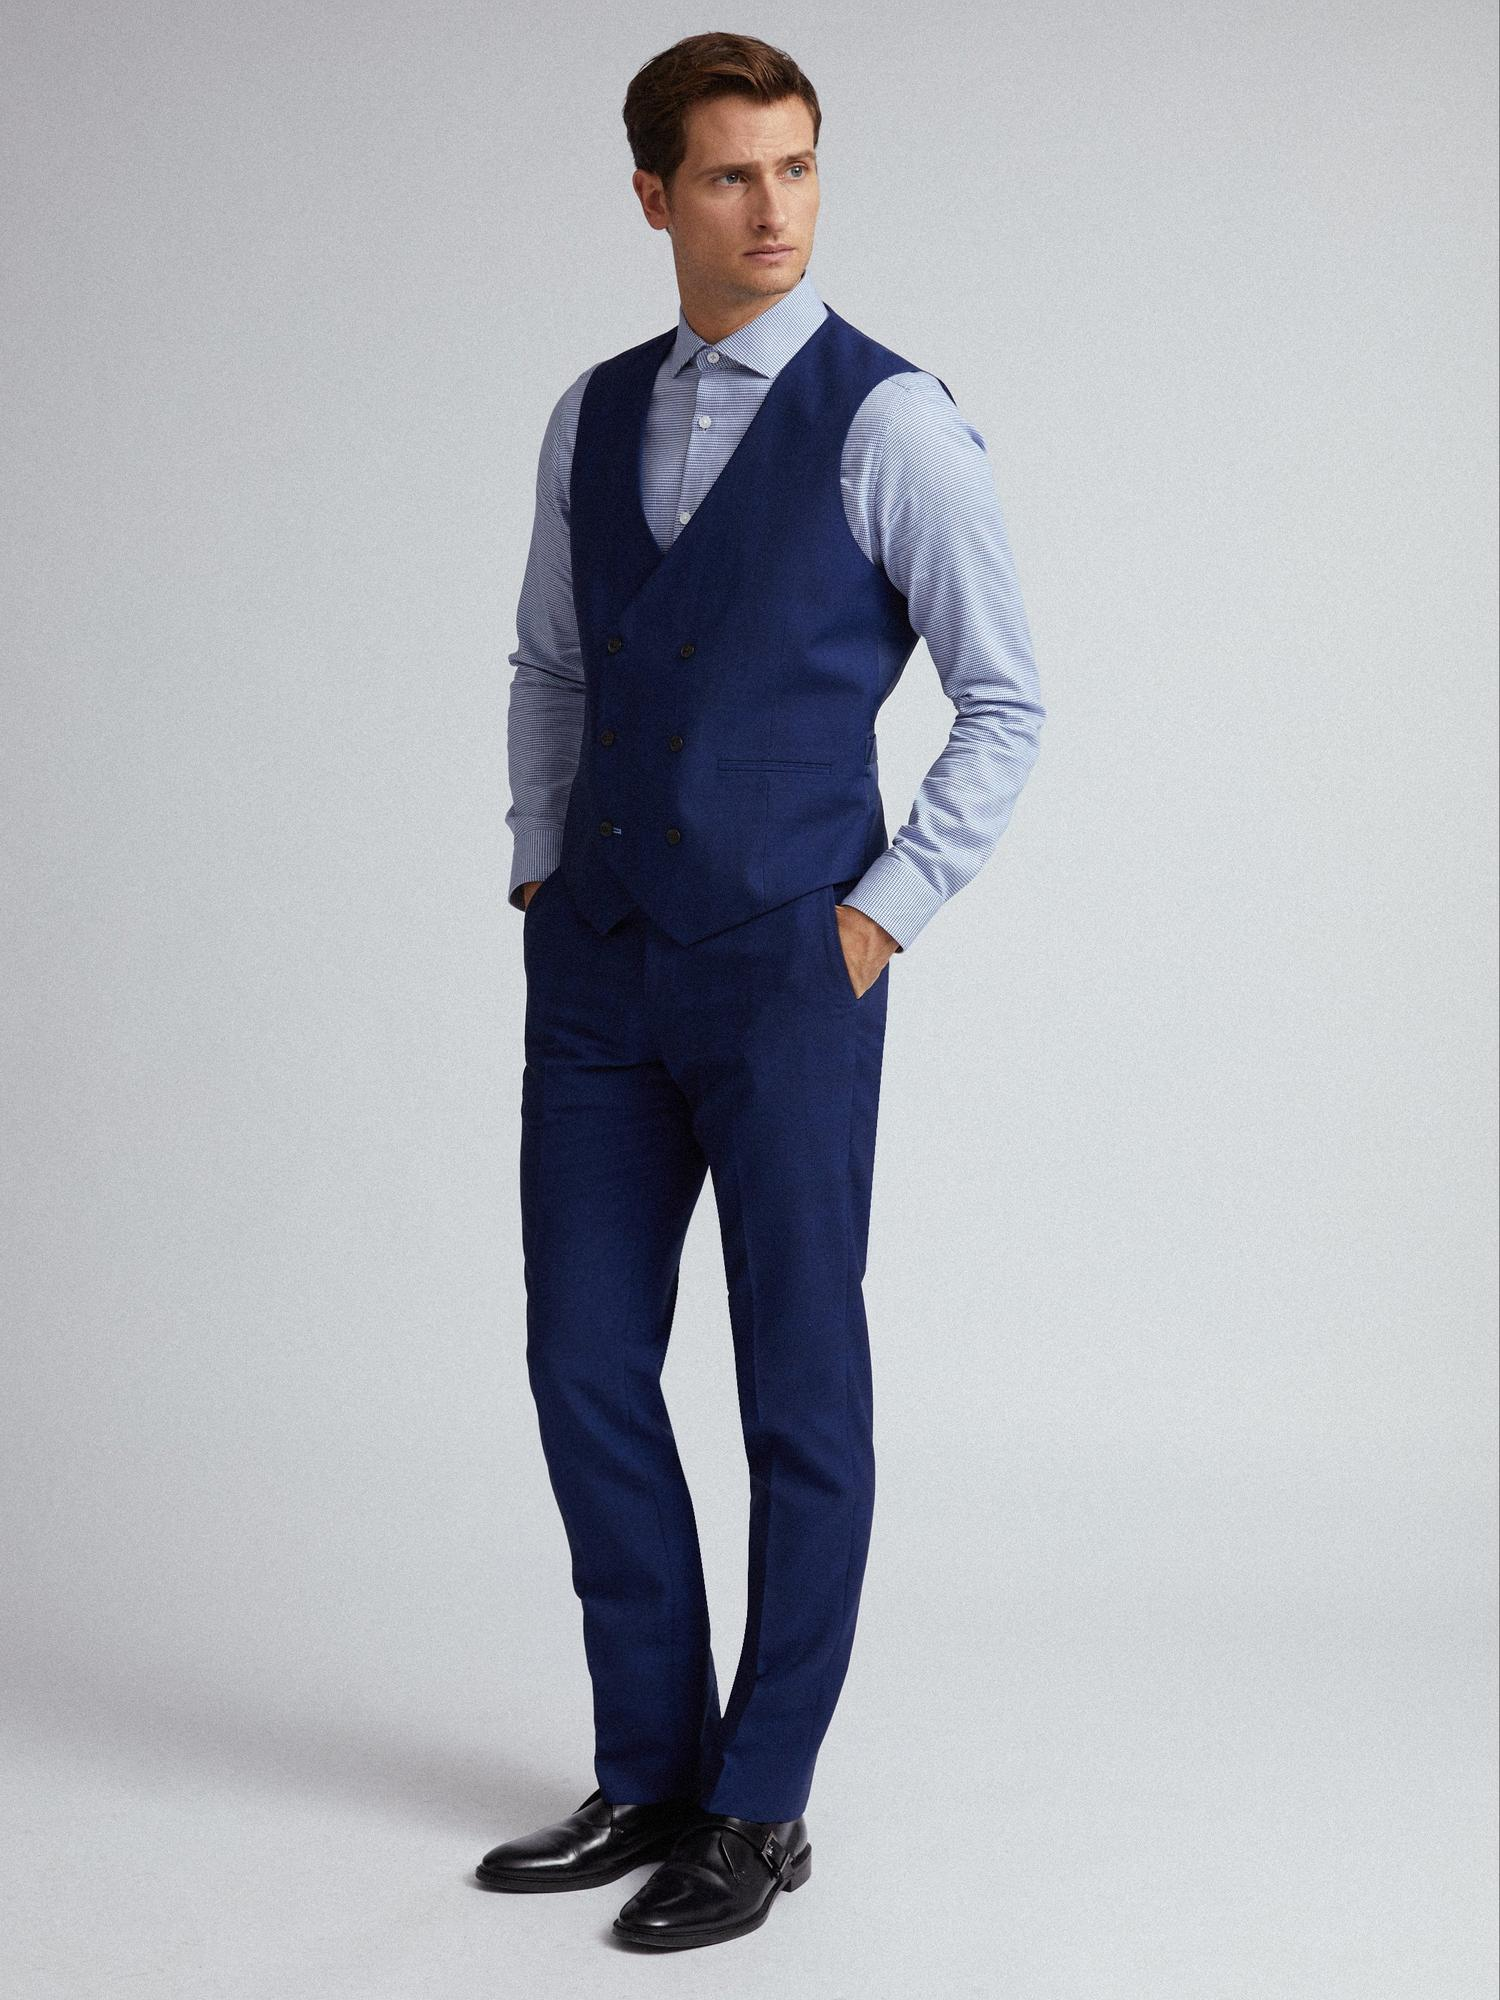 106 Blue Self Check Tailored Fit Suit Waistcoat image number 4